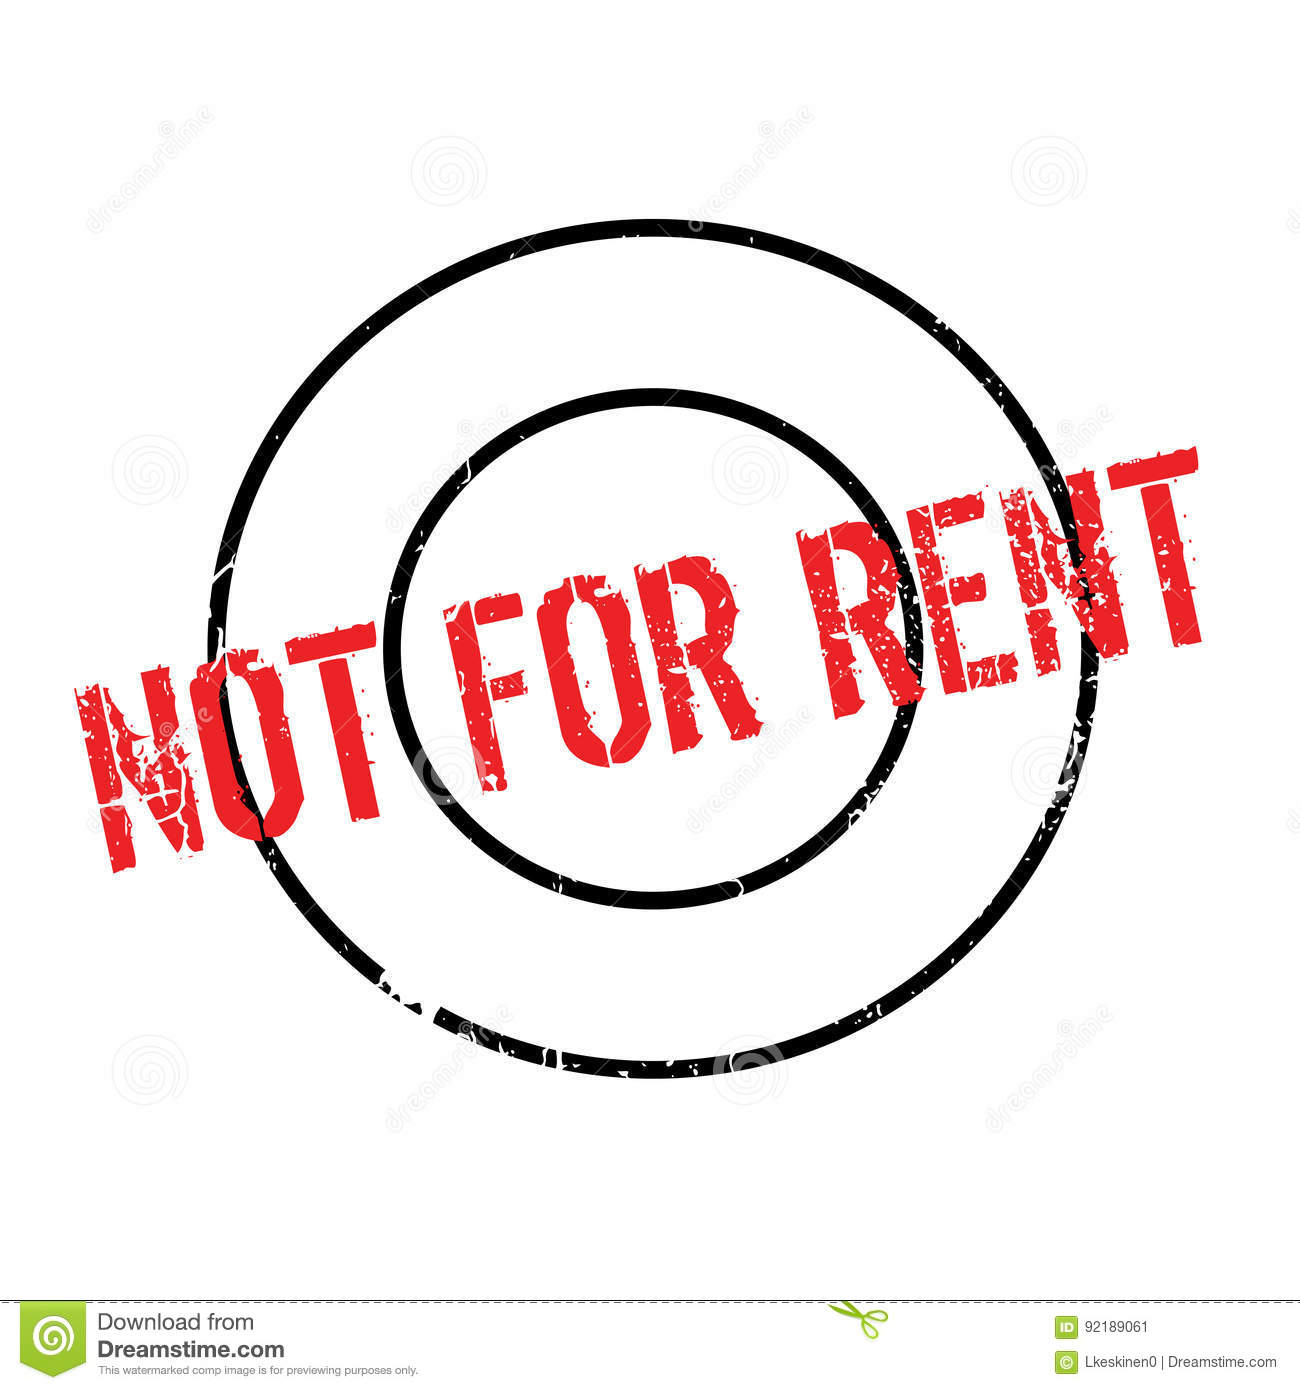 Looking For Rent: Landlord Cartoons, Illustrations & Vector Stock Images